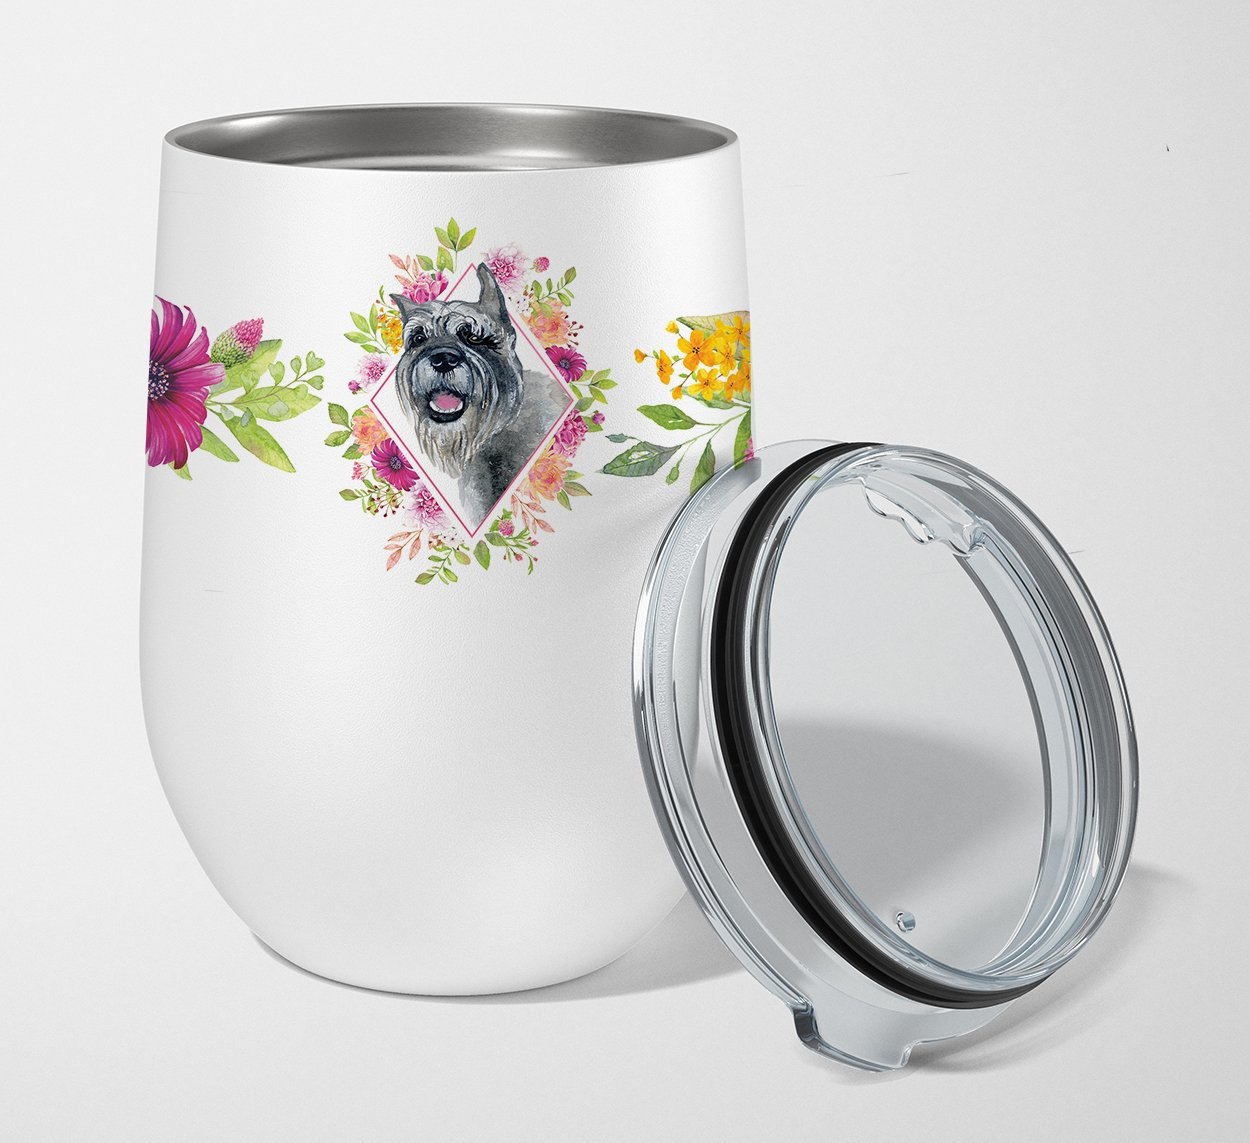 Schnauzer Pink Flowers Stainless Steel 12 oz Stemless Wine Glass CK4179TBL12 by Caroline's Treasures